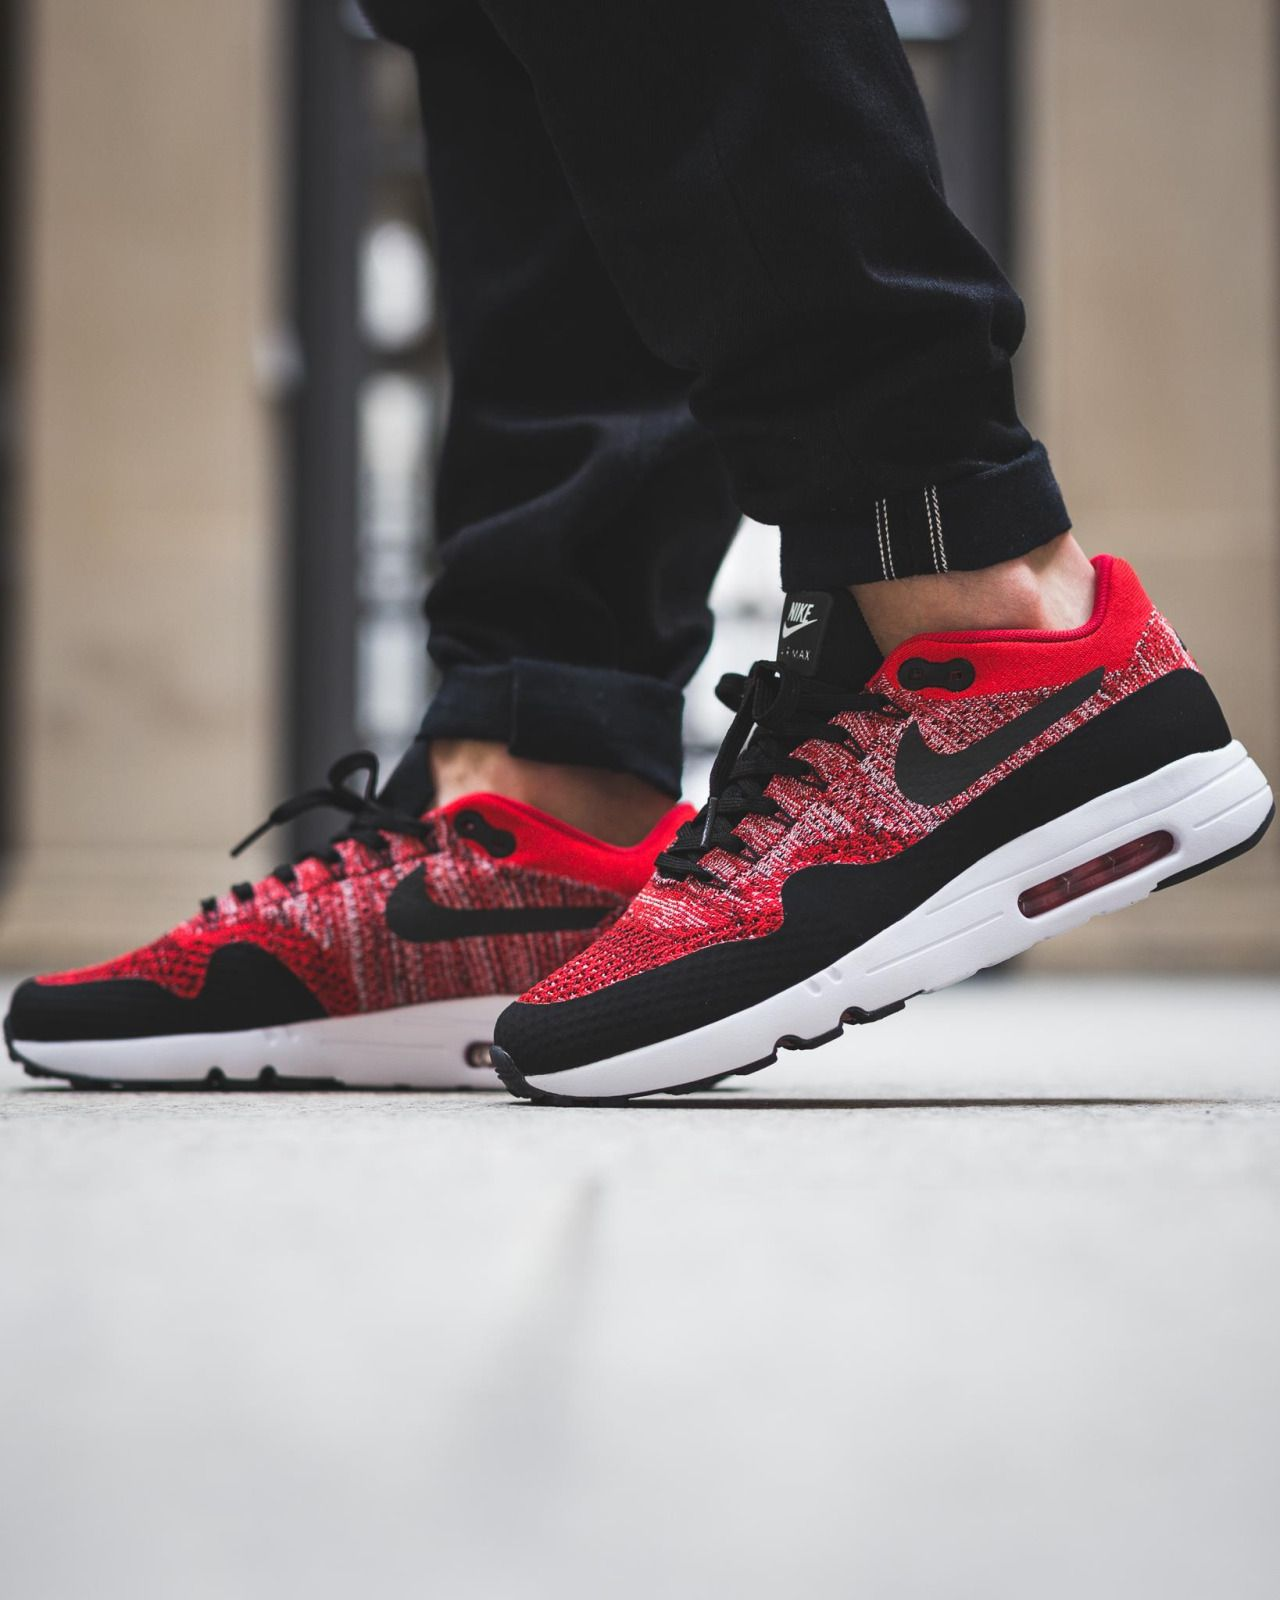 The shopping nike Air Max 90 Ultra 2.0 Flyknit REDBLACK